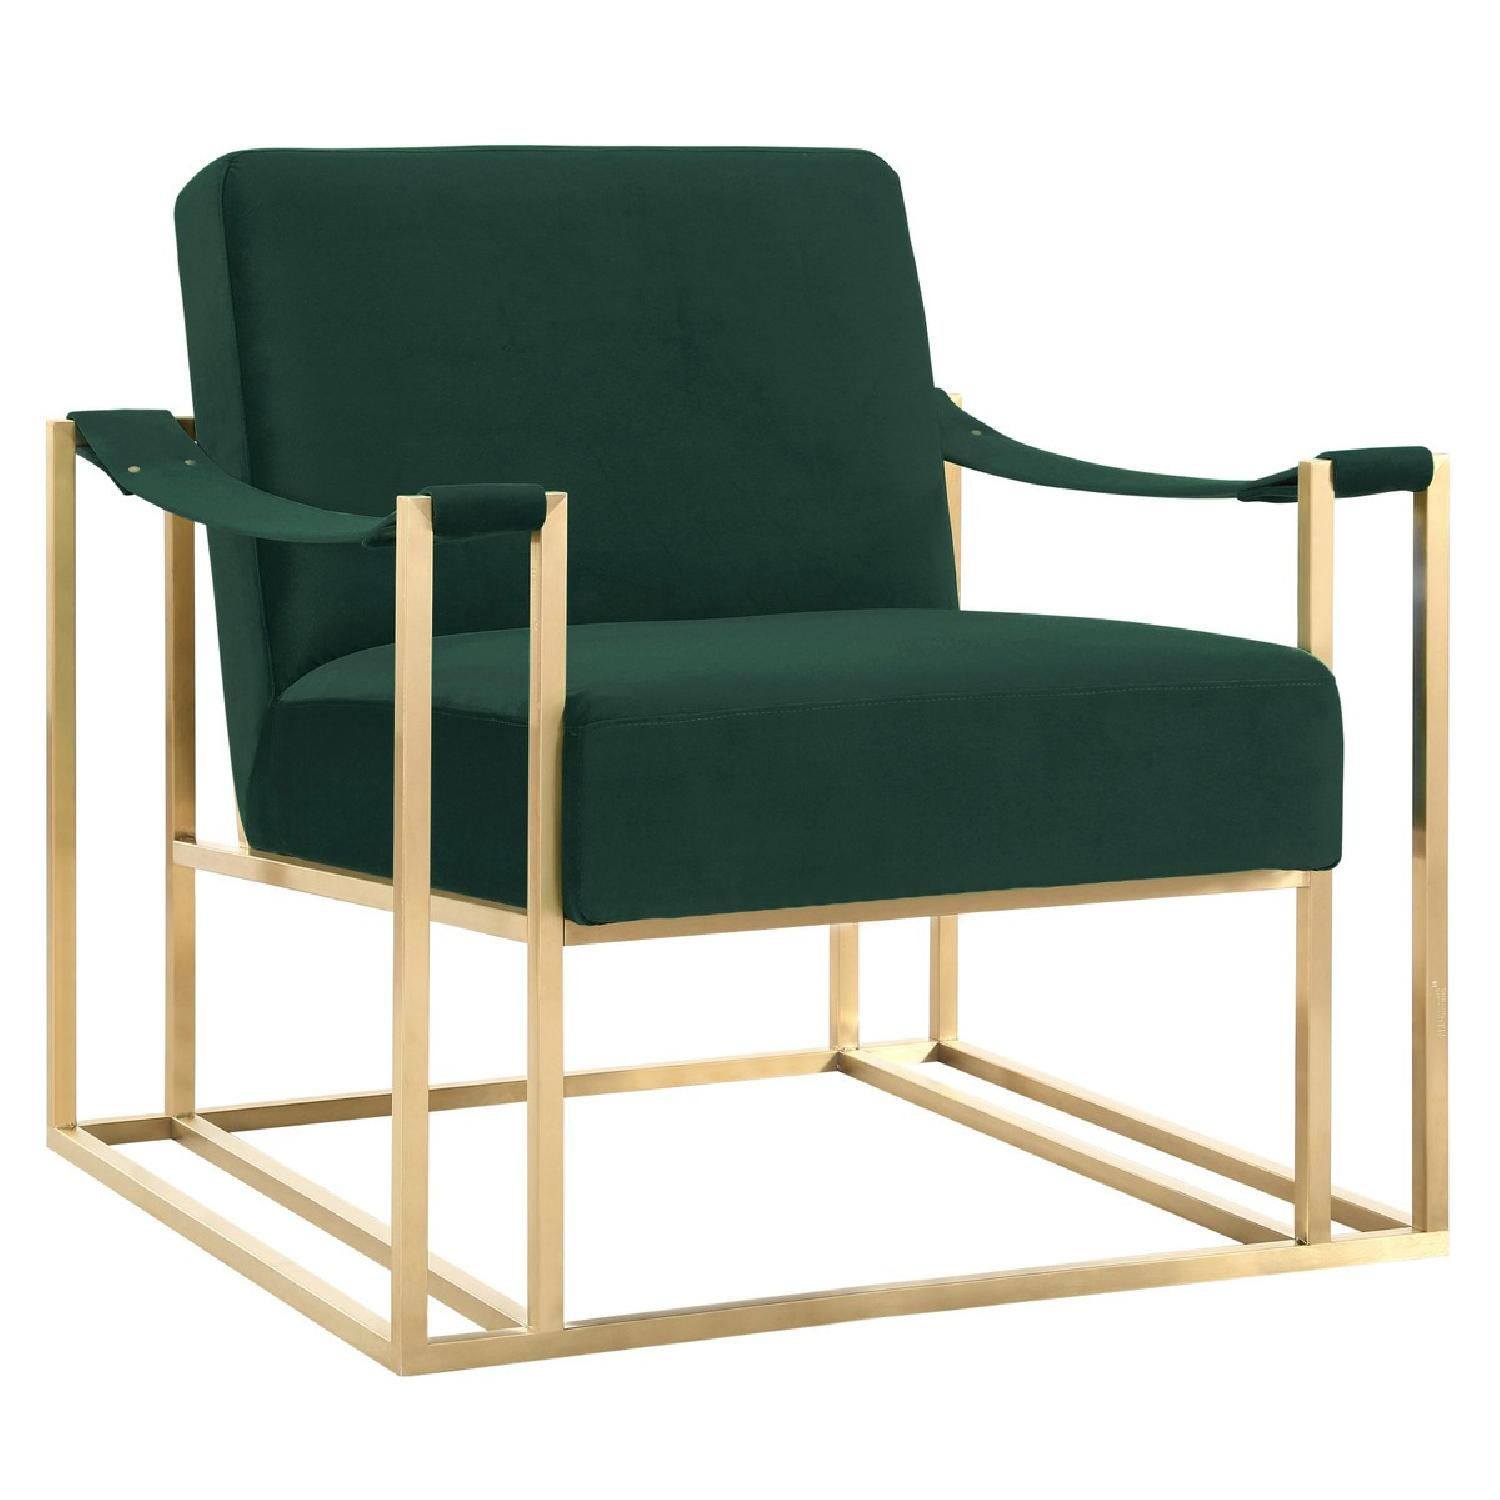 TOV Furniture Baxter Forest Green Velvet Chair